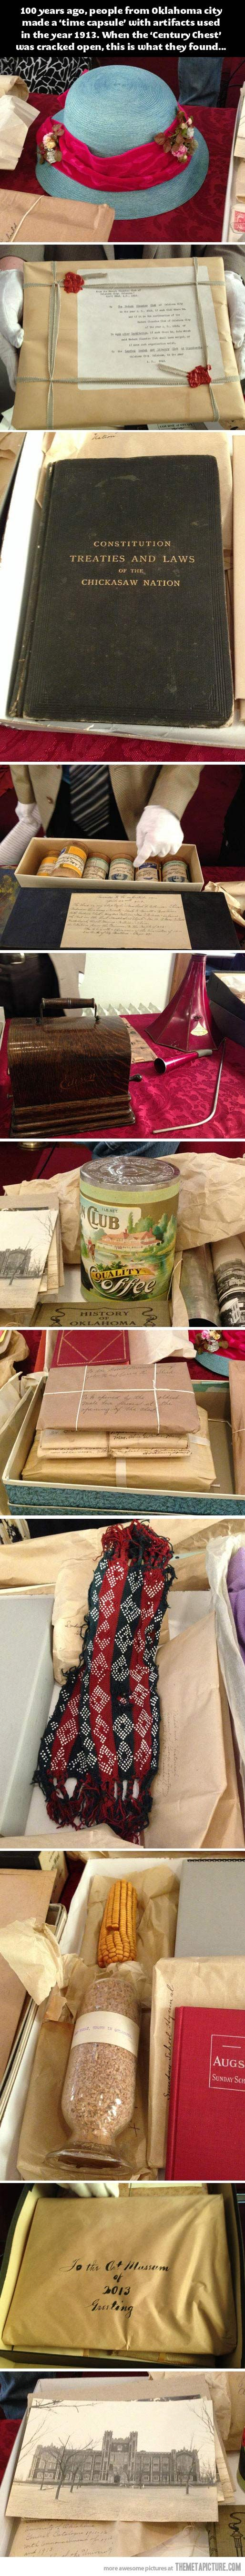 100 years ago, a time capsule was made. These are its contents…